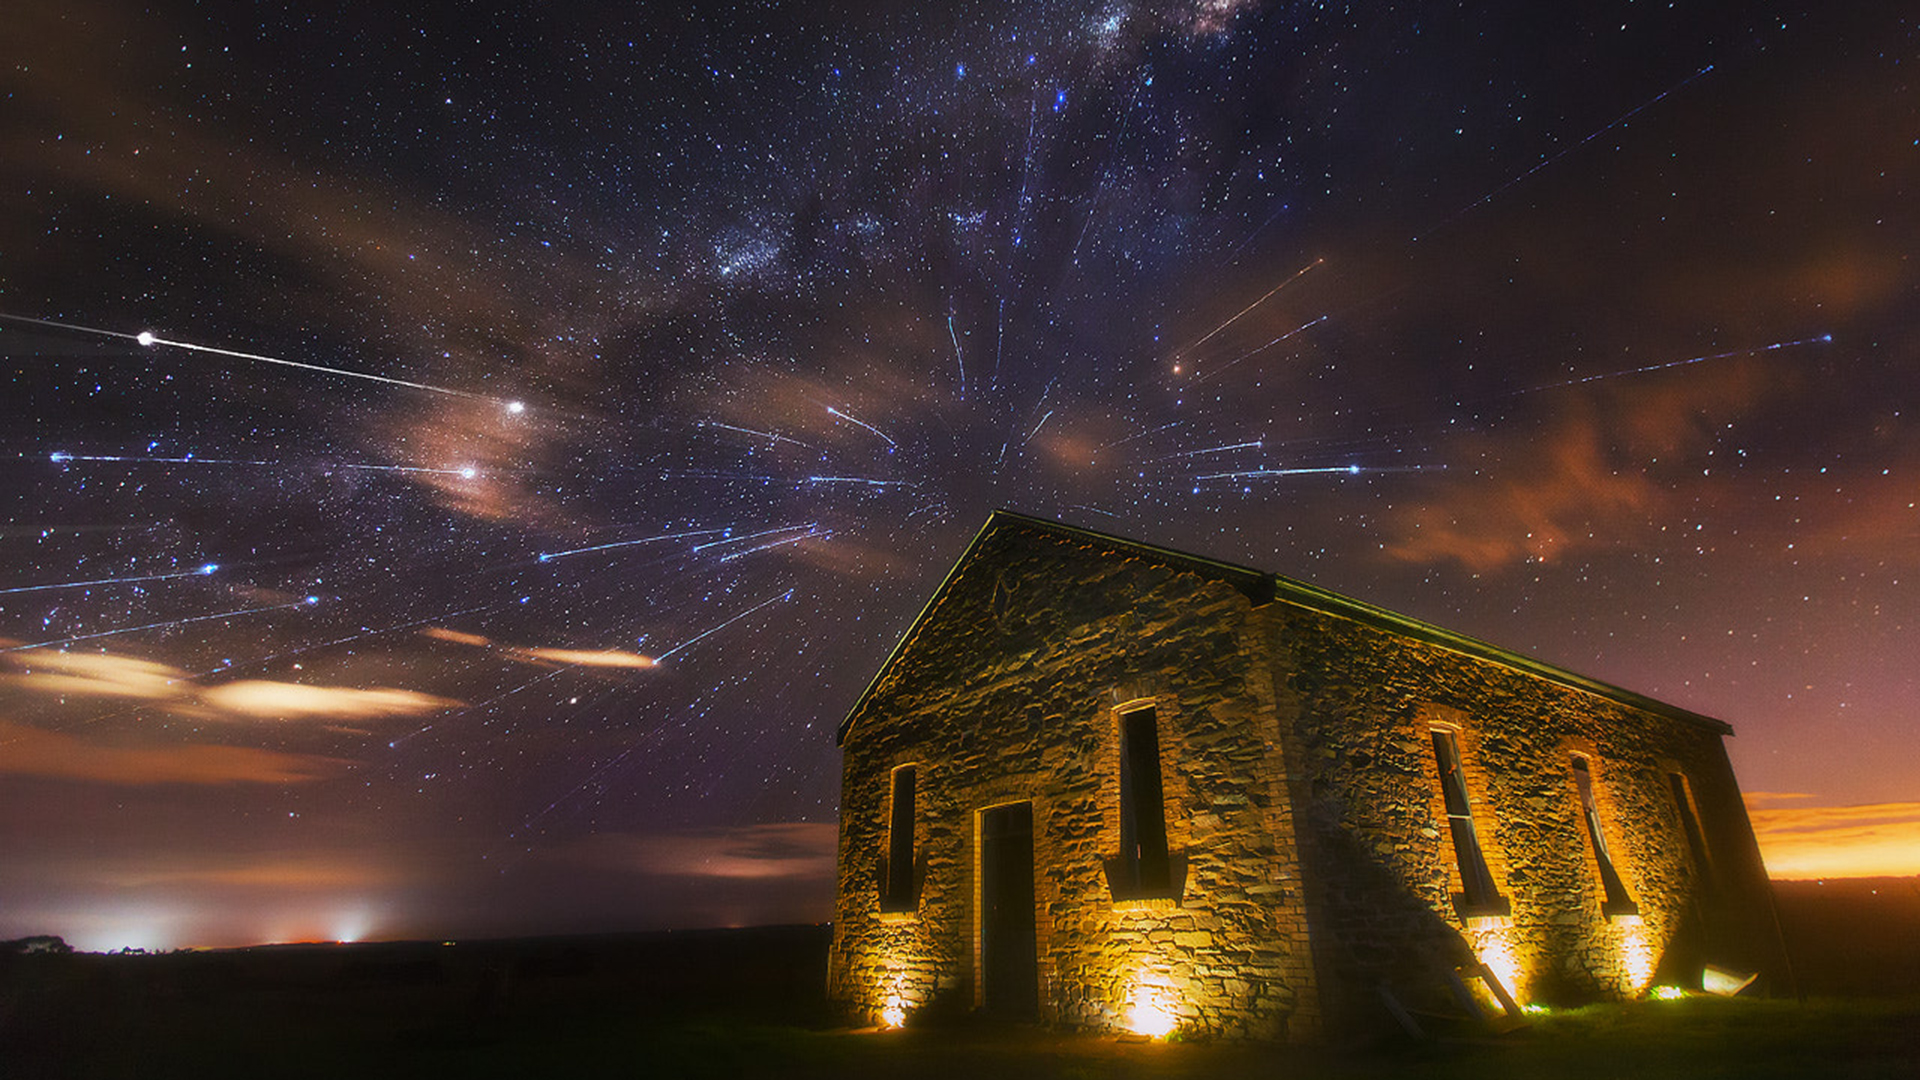 20 meteor shower photos that'll inspire you to shoot the Leonids